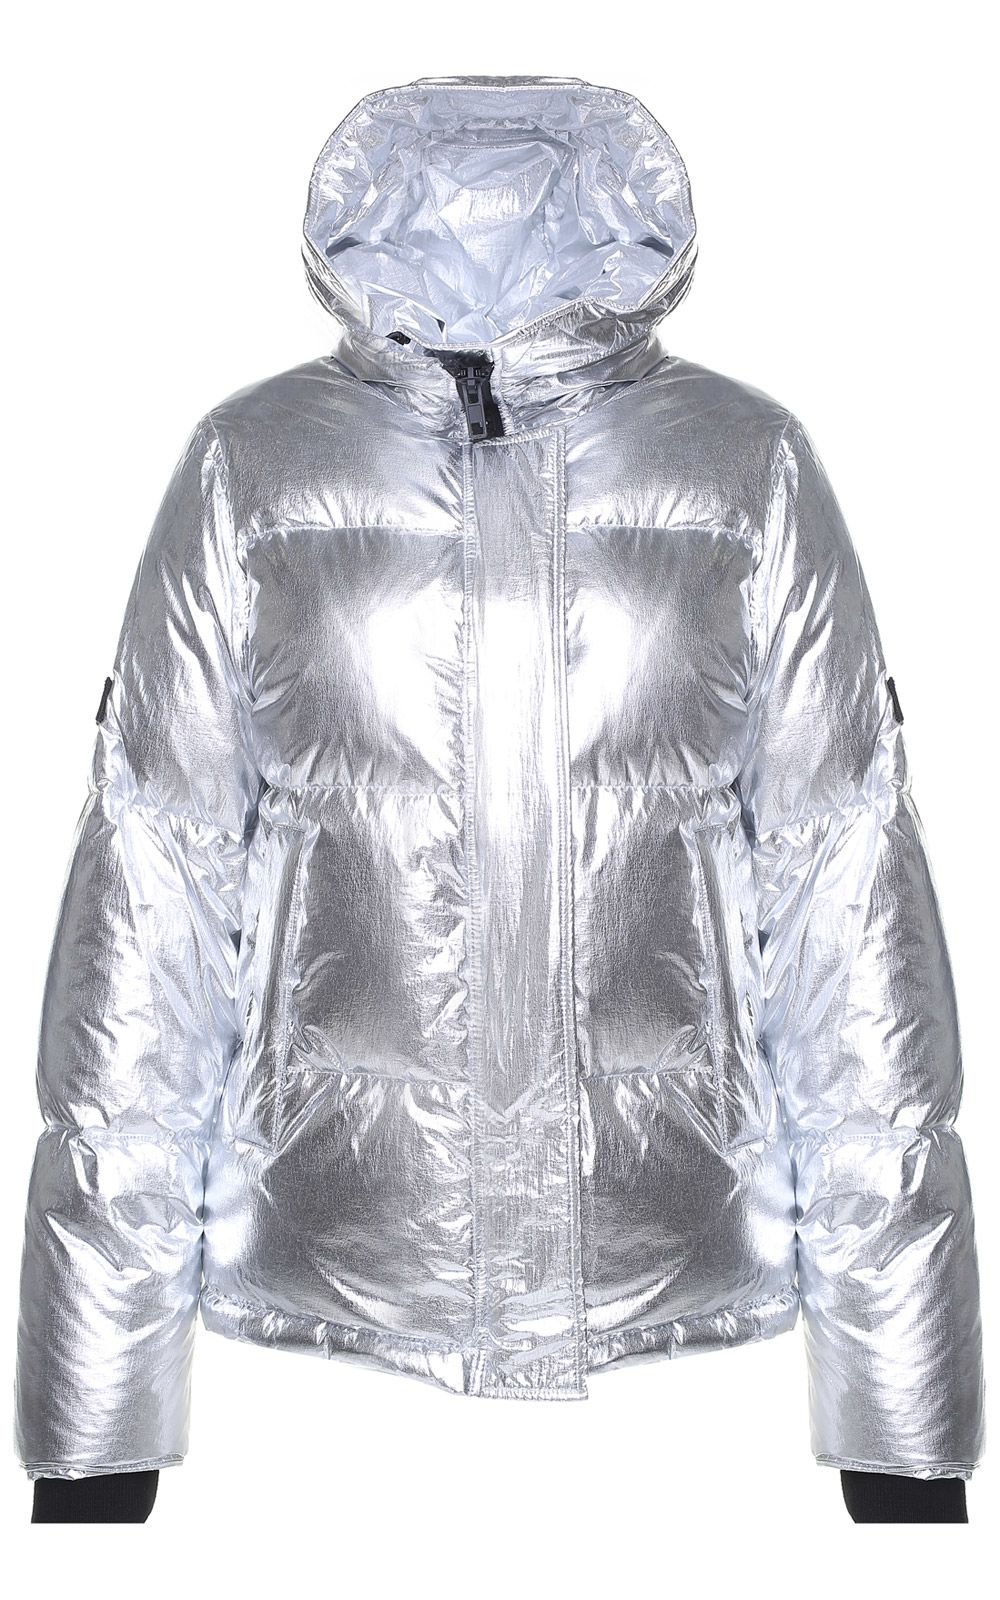 kenzo -  Hooded Metallic Puffer Jacket